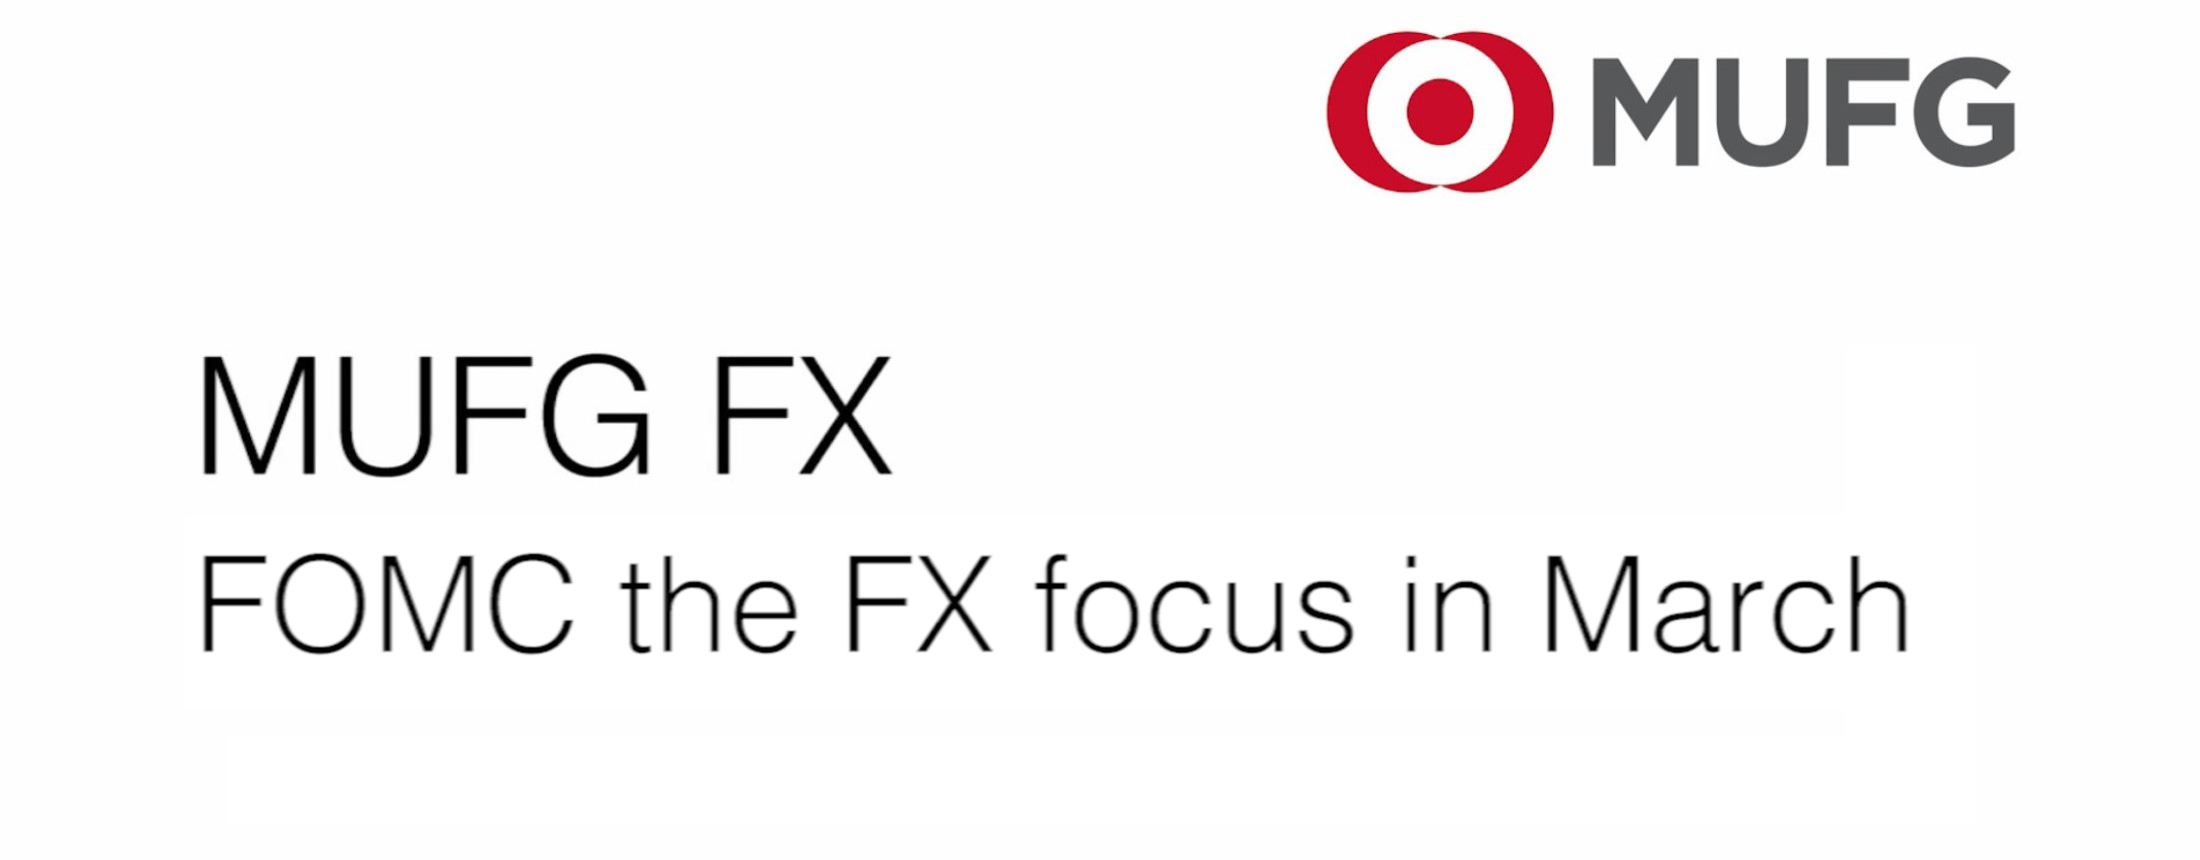 MUFG insight FOMC them fx focus